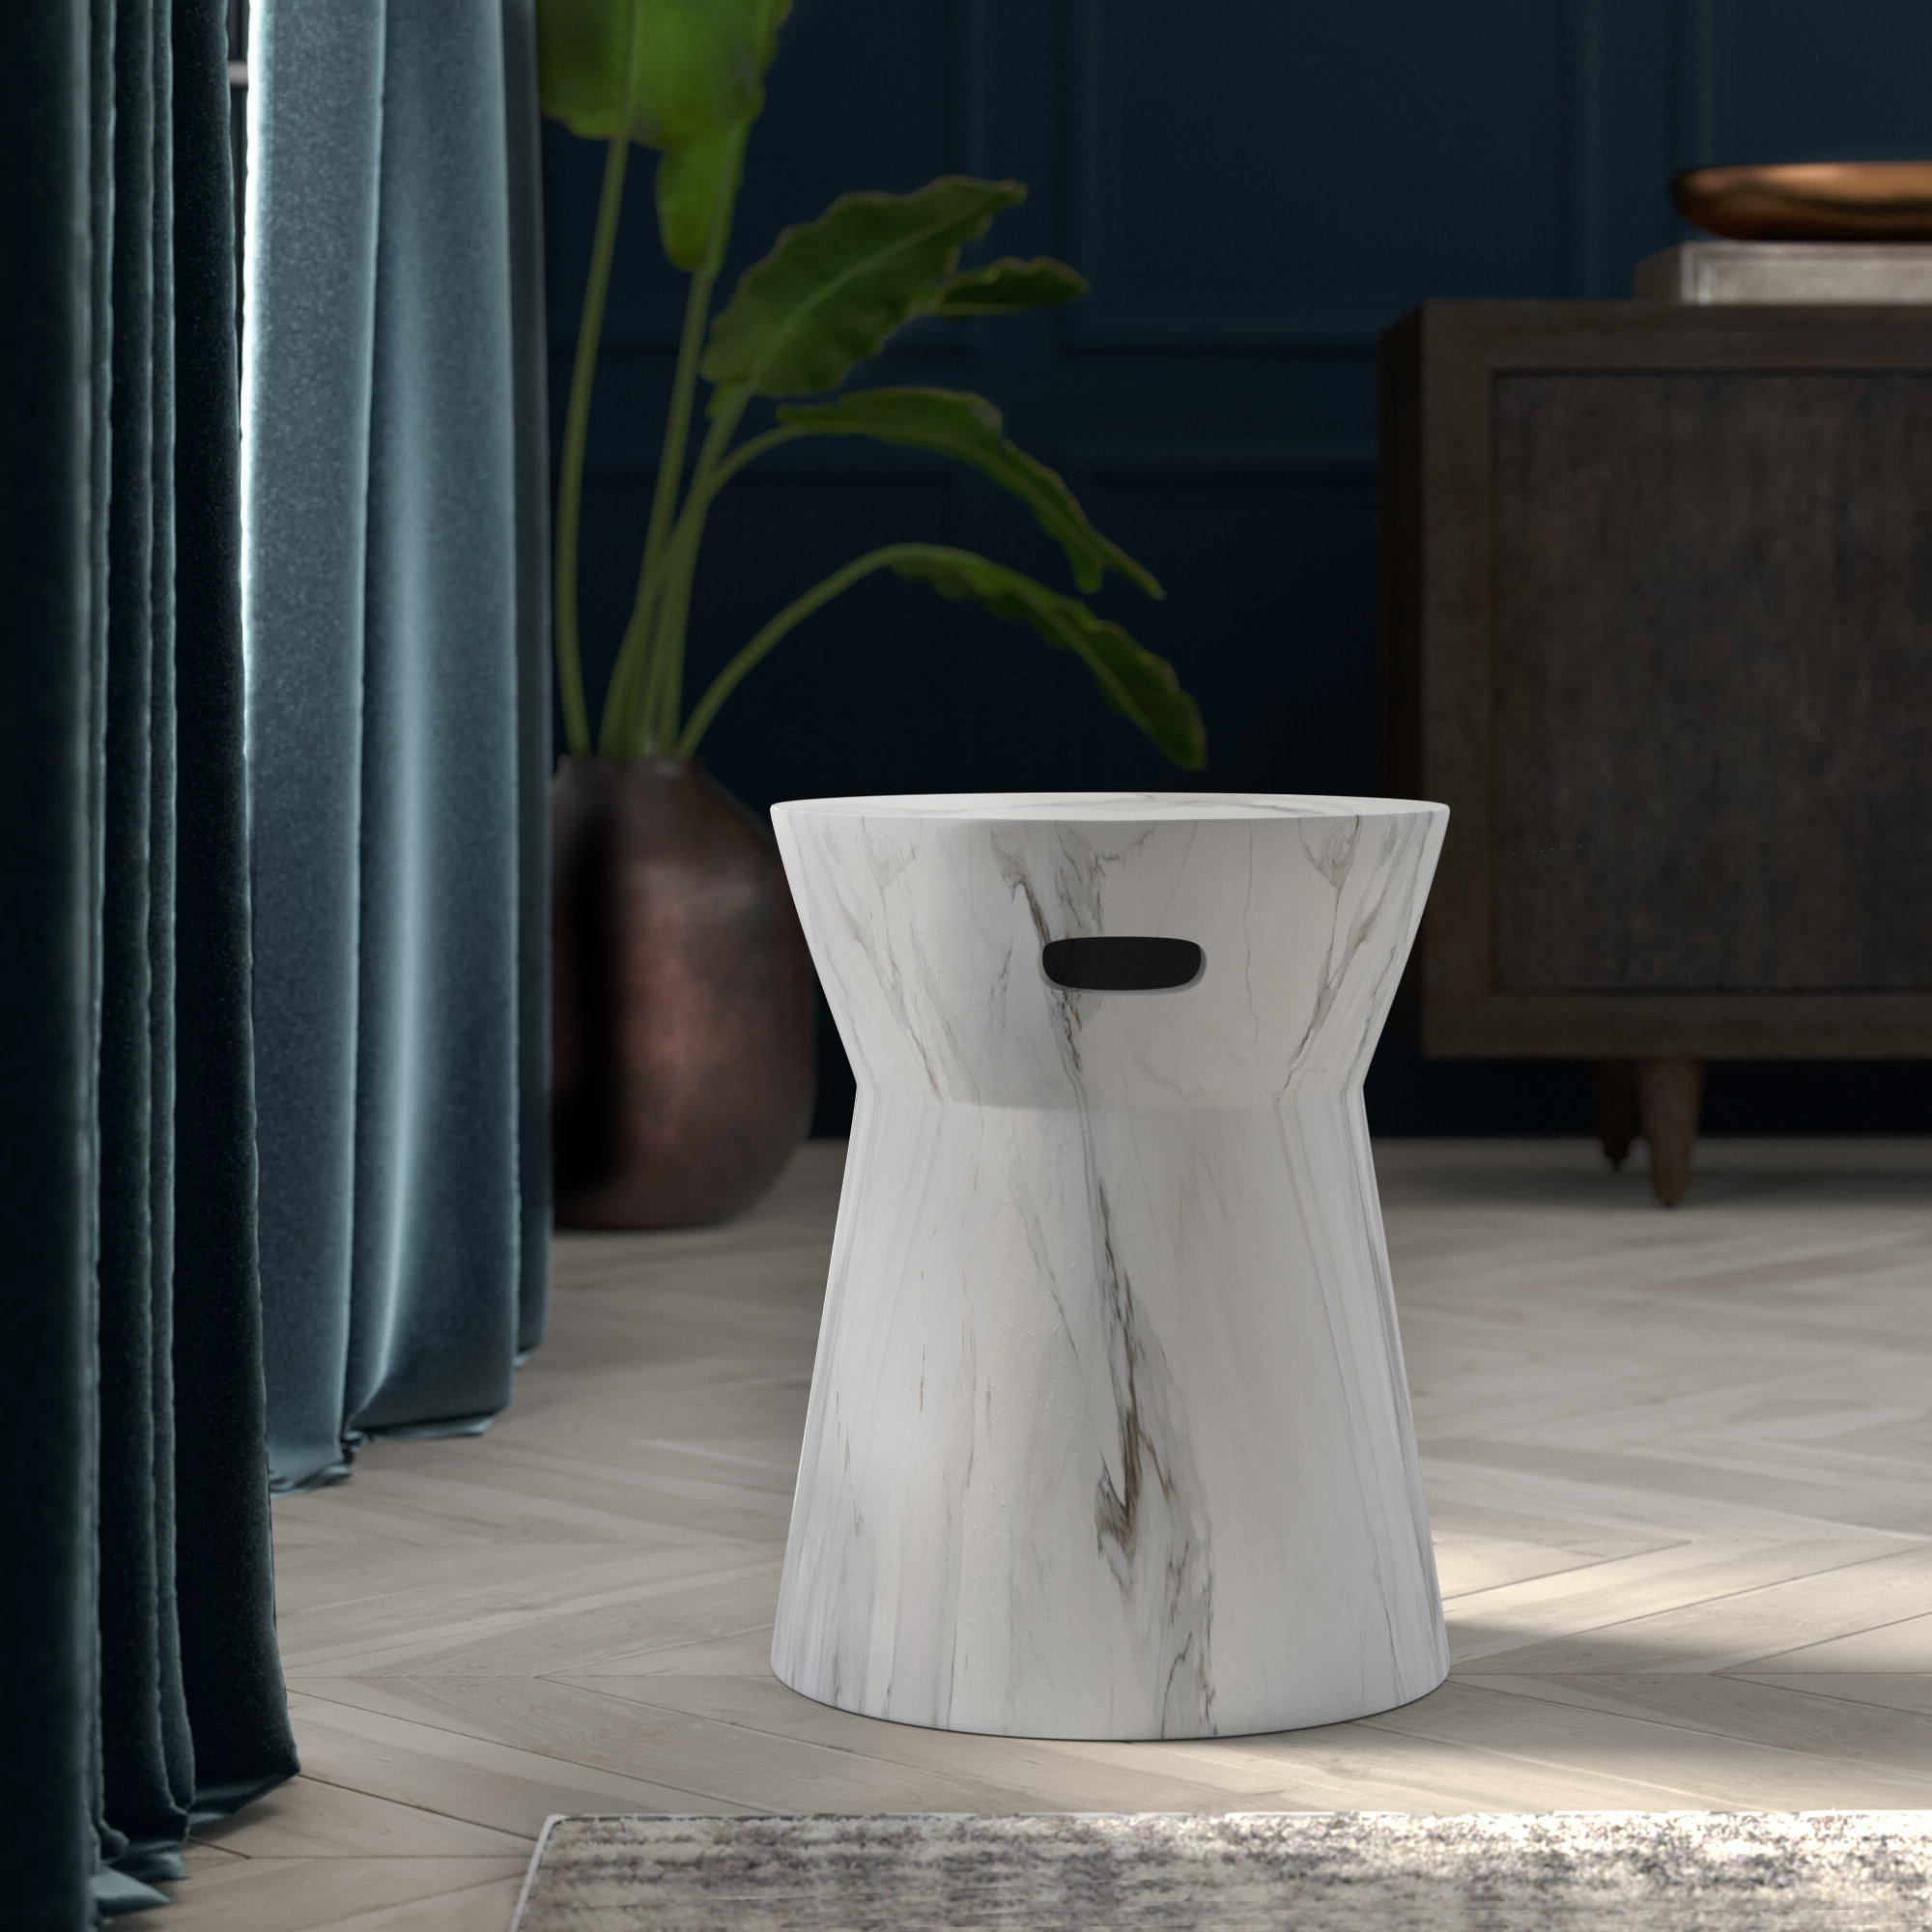 Svendsen Ceramic Garden Stools Regarding 2020 Westminster Ceramic Garden Stool (View 9 of 30)